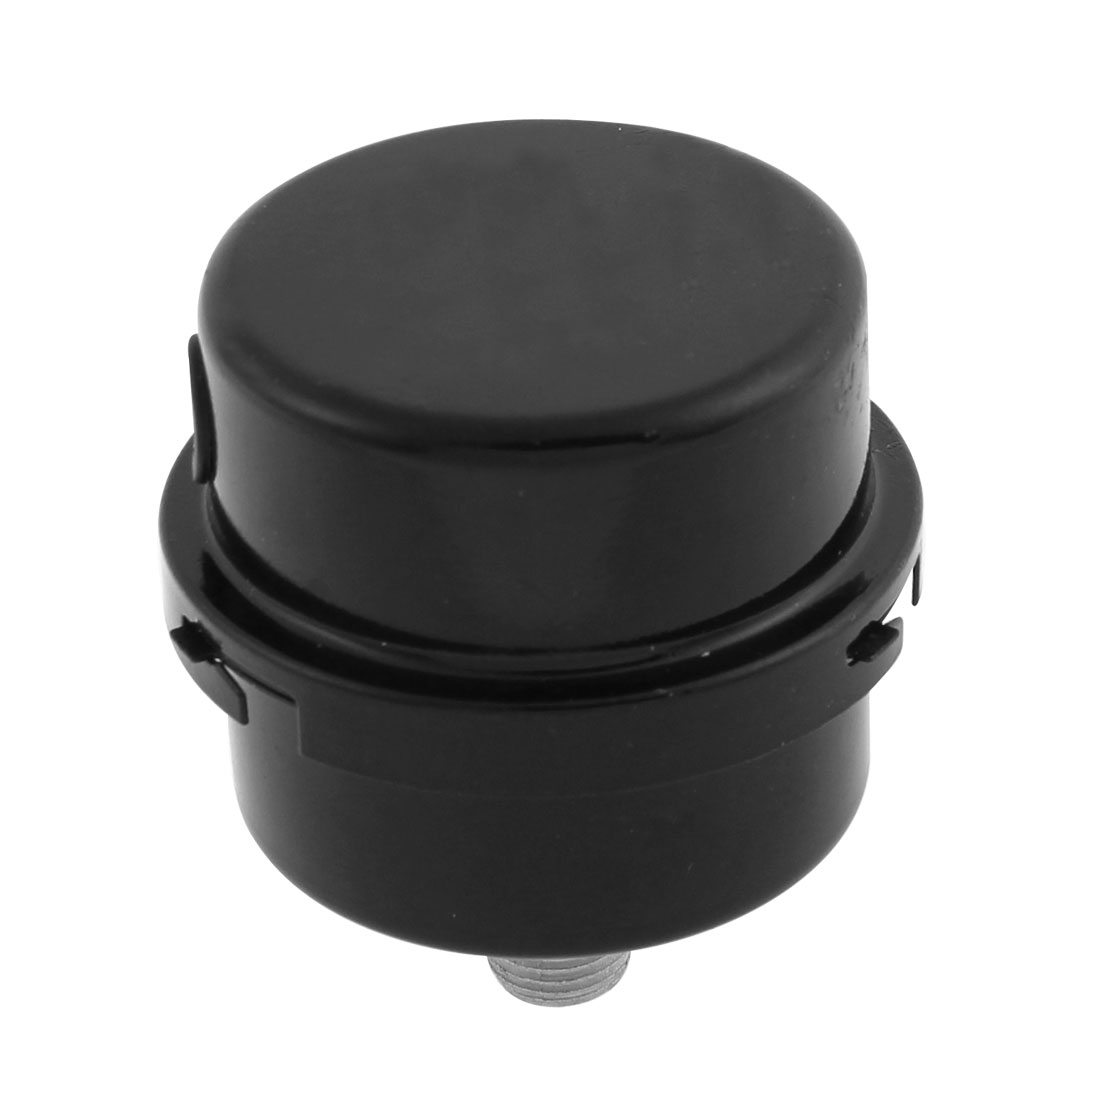 Air Compressor 12mm Male Thread Round Exhaust Filter Muffler Black